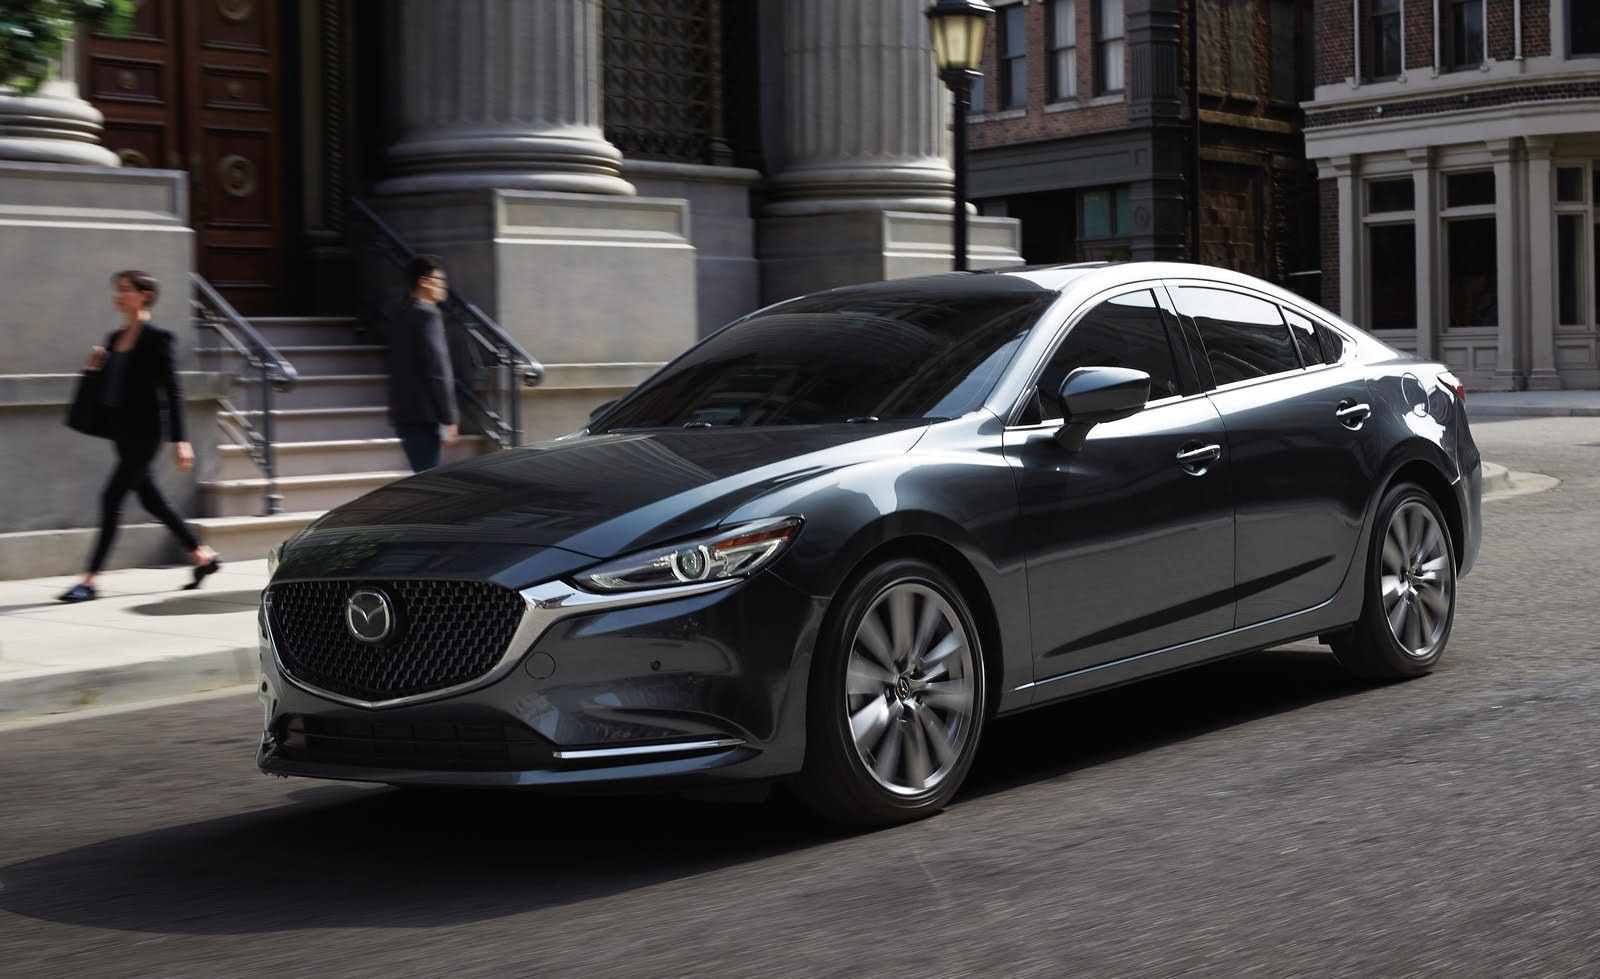 When Is The 2020 Mazda 6 Coming Out Engine En 2020 Transporte